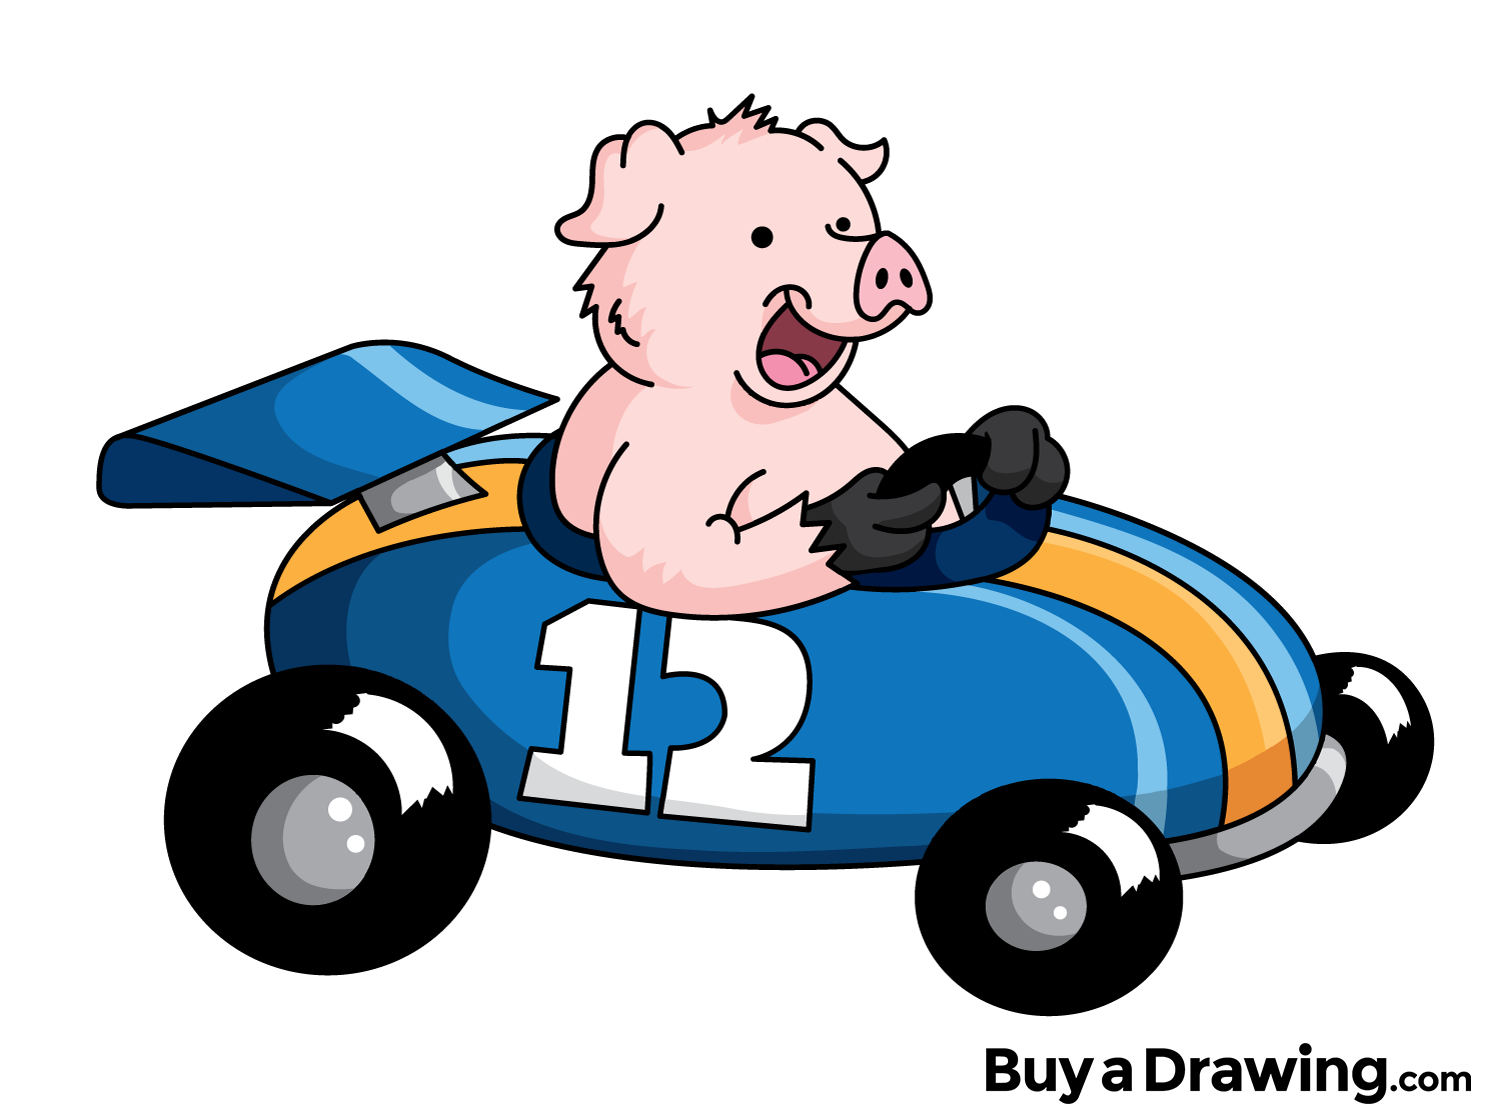 Car facing forward clipart library A cartoon pig in a race car that I drew for the heck of it. #pig ... library